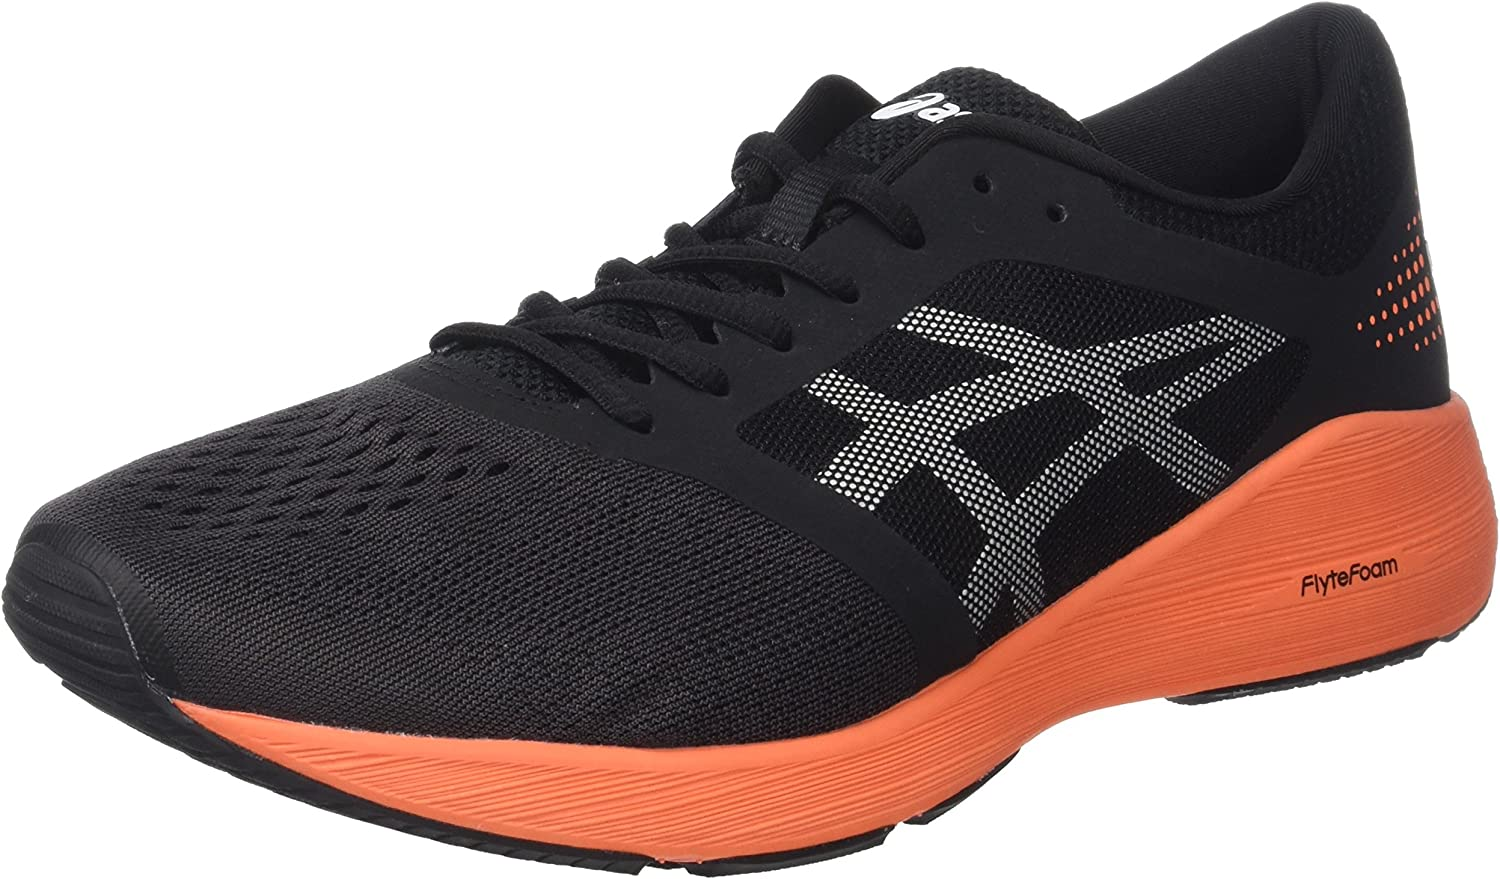 Asics T7D2N9030, Zapatillas de Running para Hombre, Negro (Black/Hot Orange/White), 45 EU: Amazon.es: Zapatos y complementos